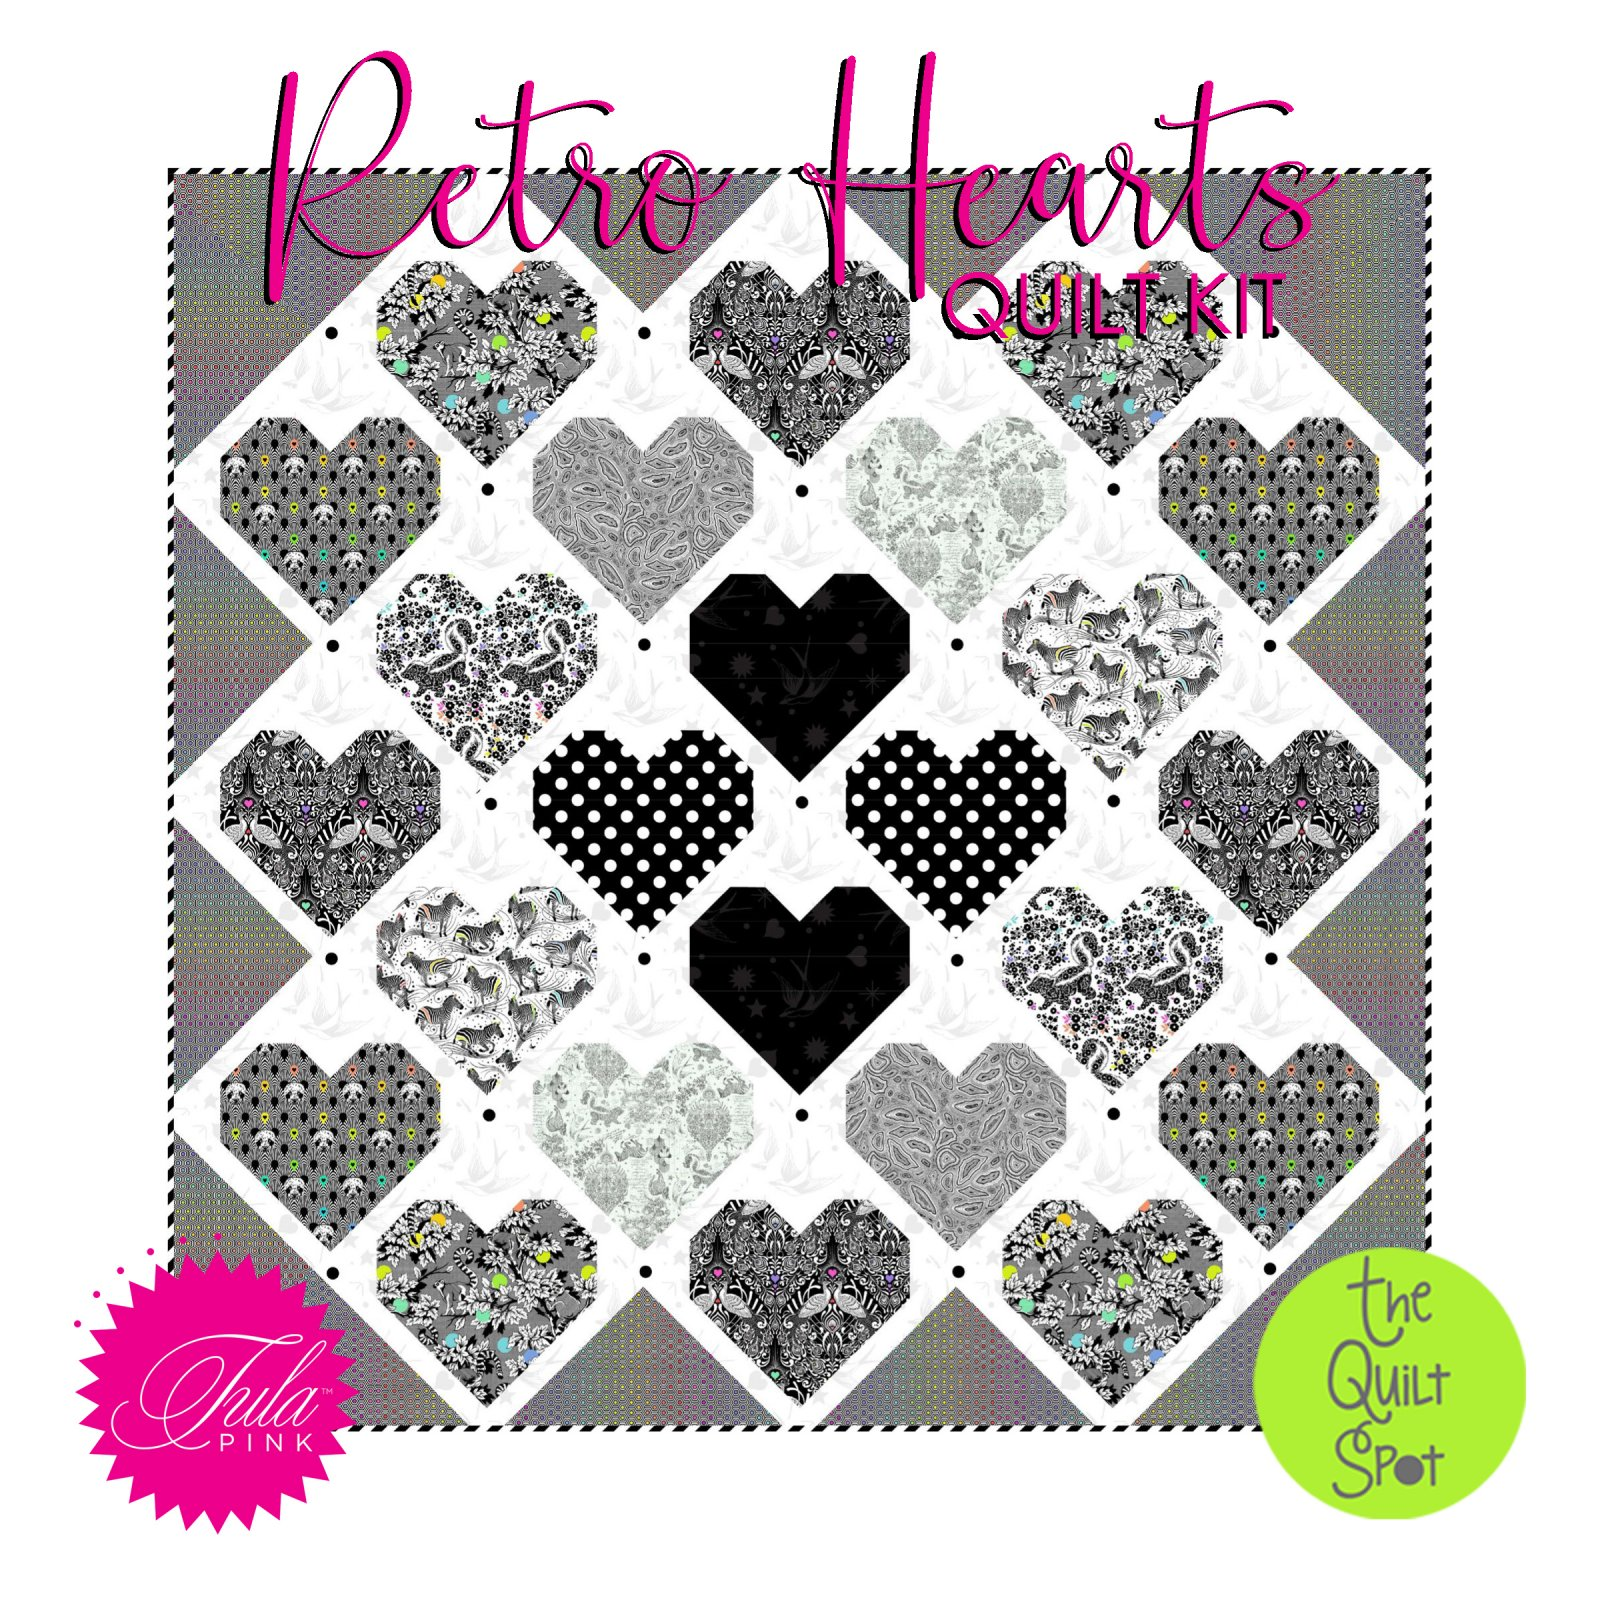 Retro Hearts Quilt Kit featuring Tula Pink's Linework